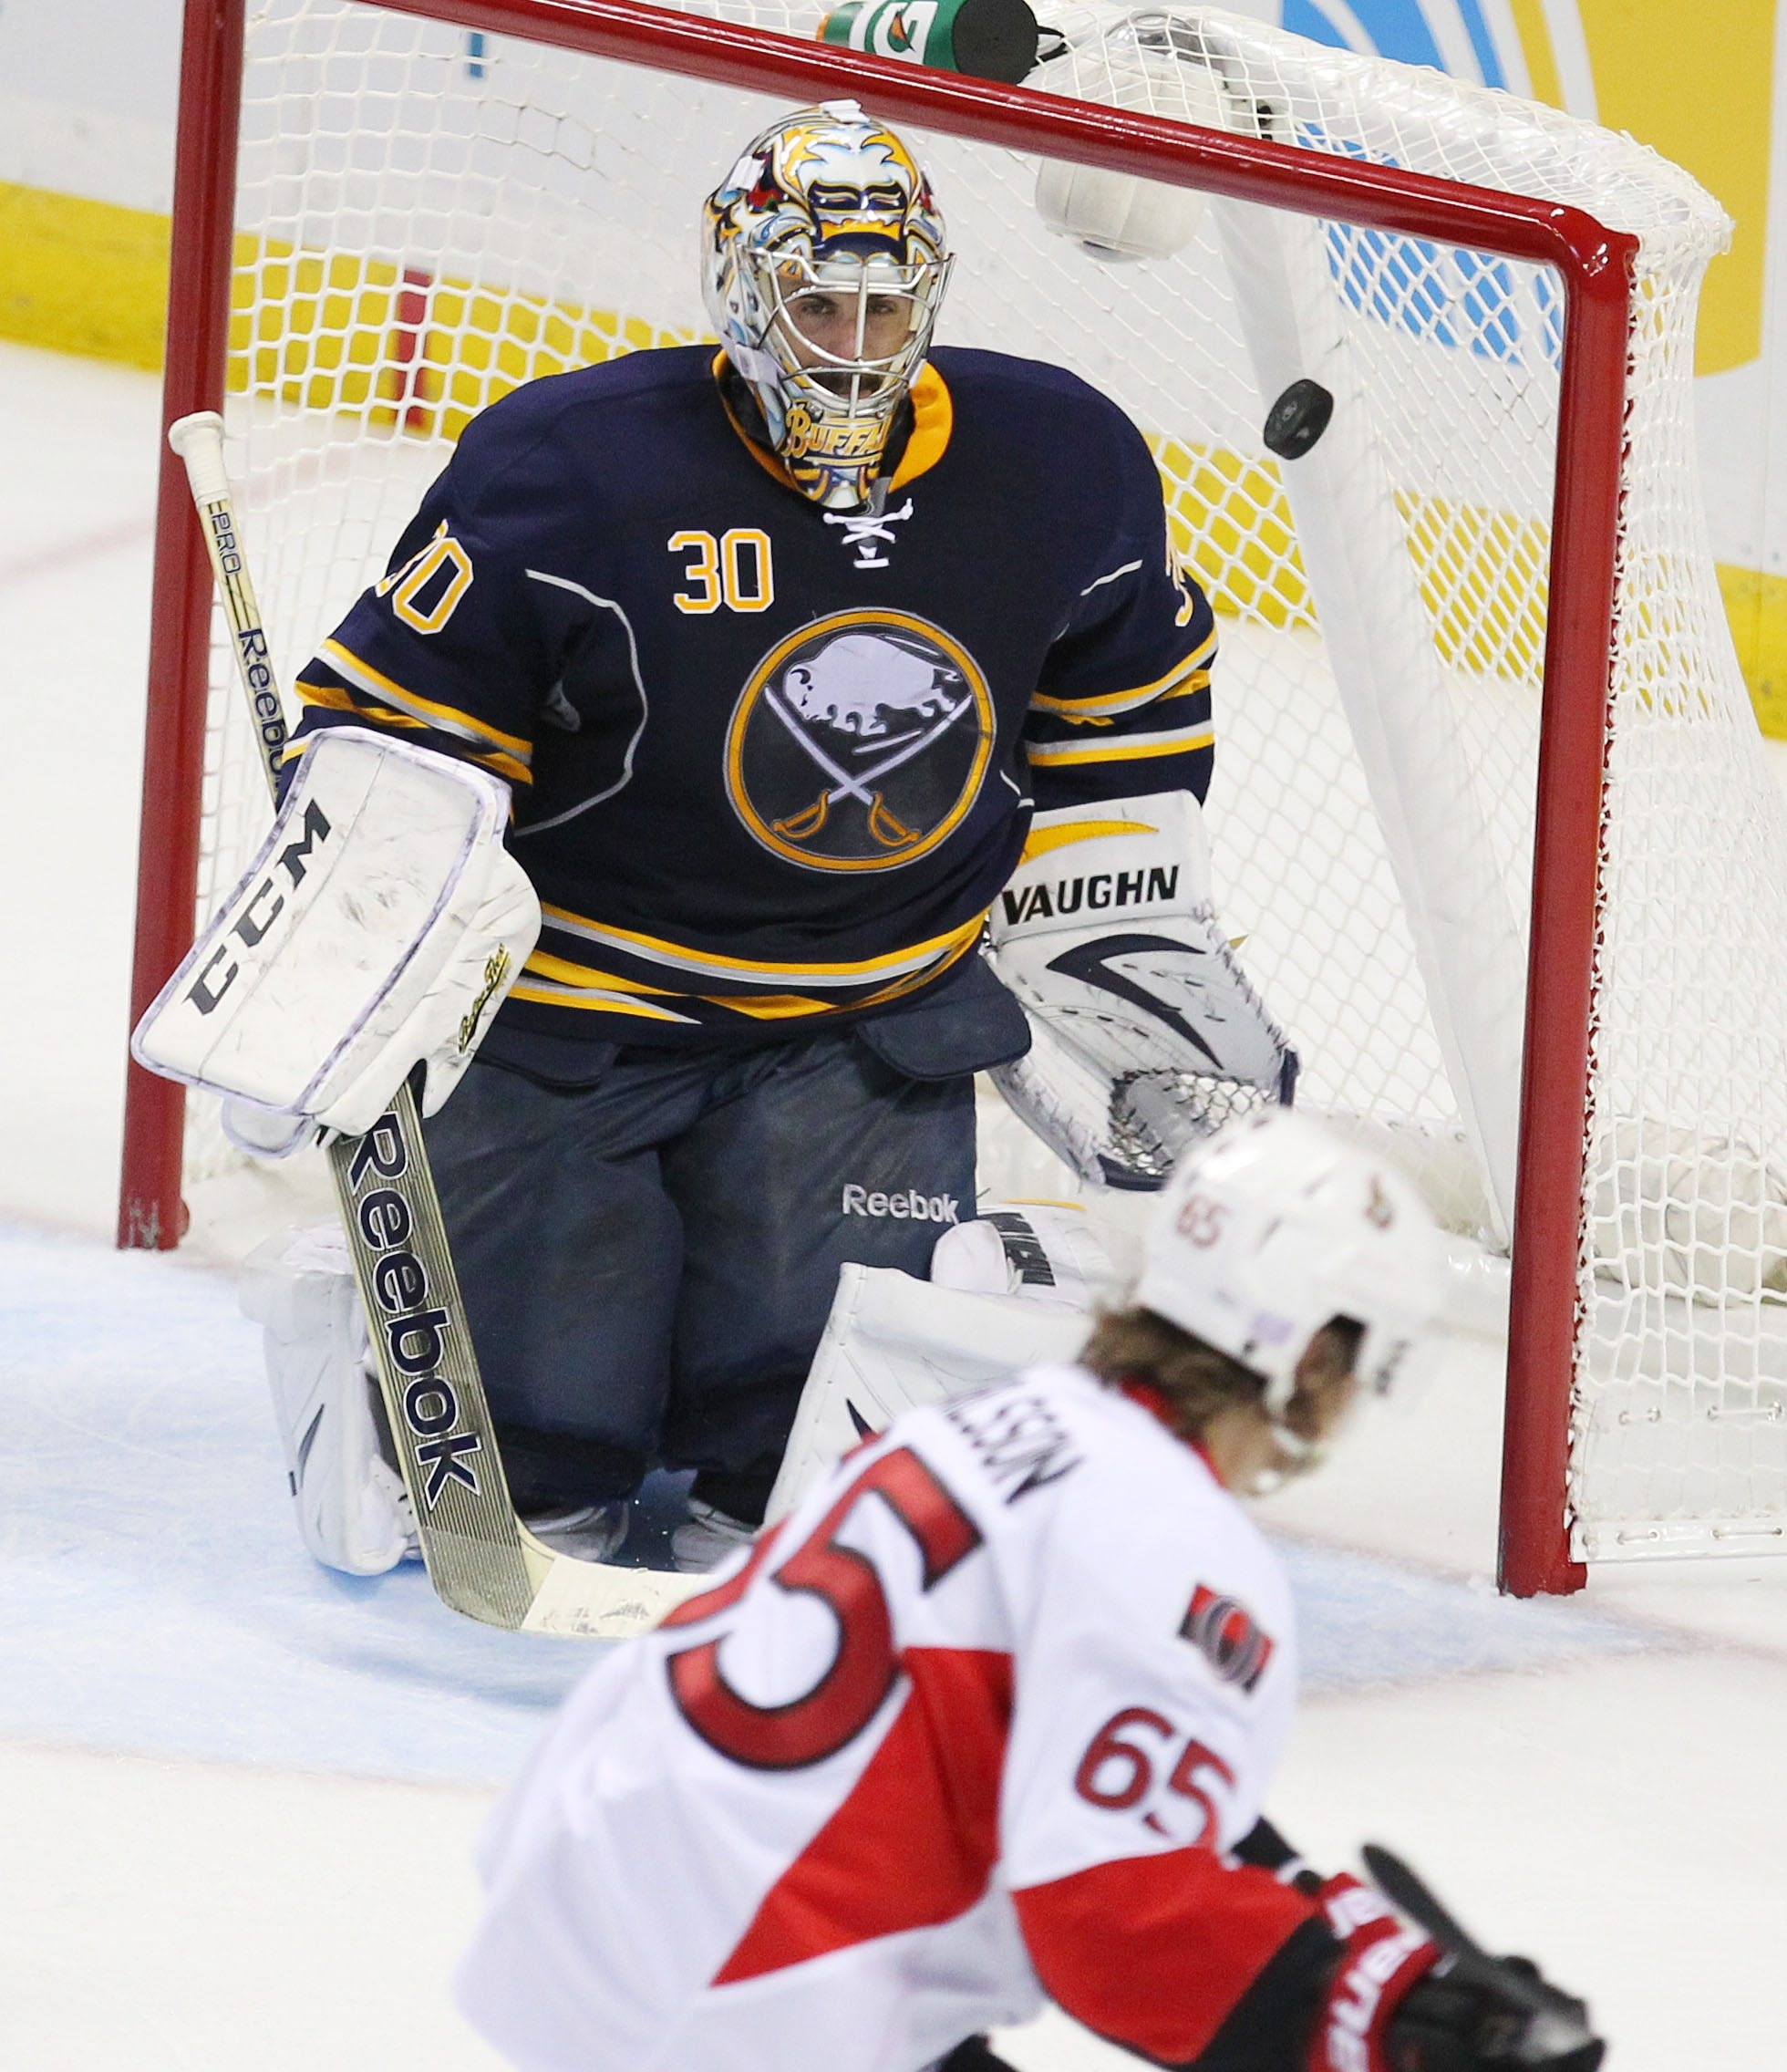 The Senators' Erik Karlsson lifts the game-winning goal past the Sabres' Ryan Miller late in the third period at the First Niagara Center in Buffalo, Friday, October 4, 2013.